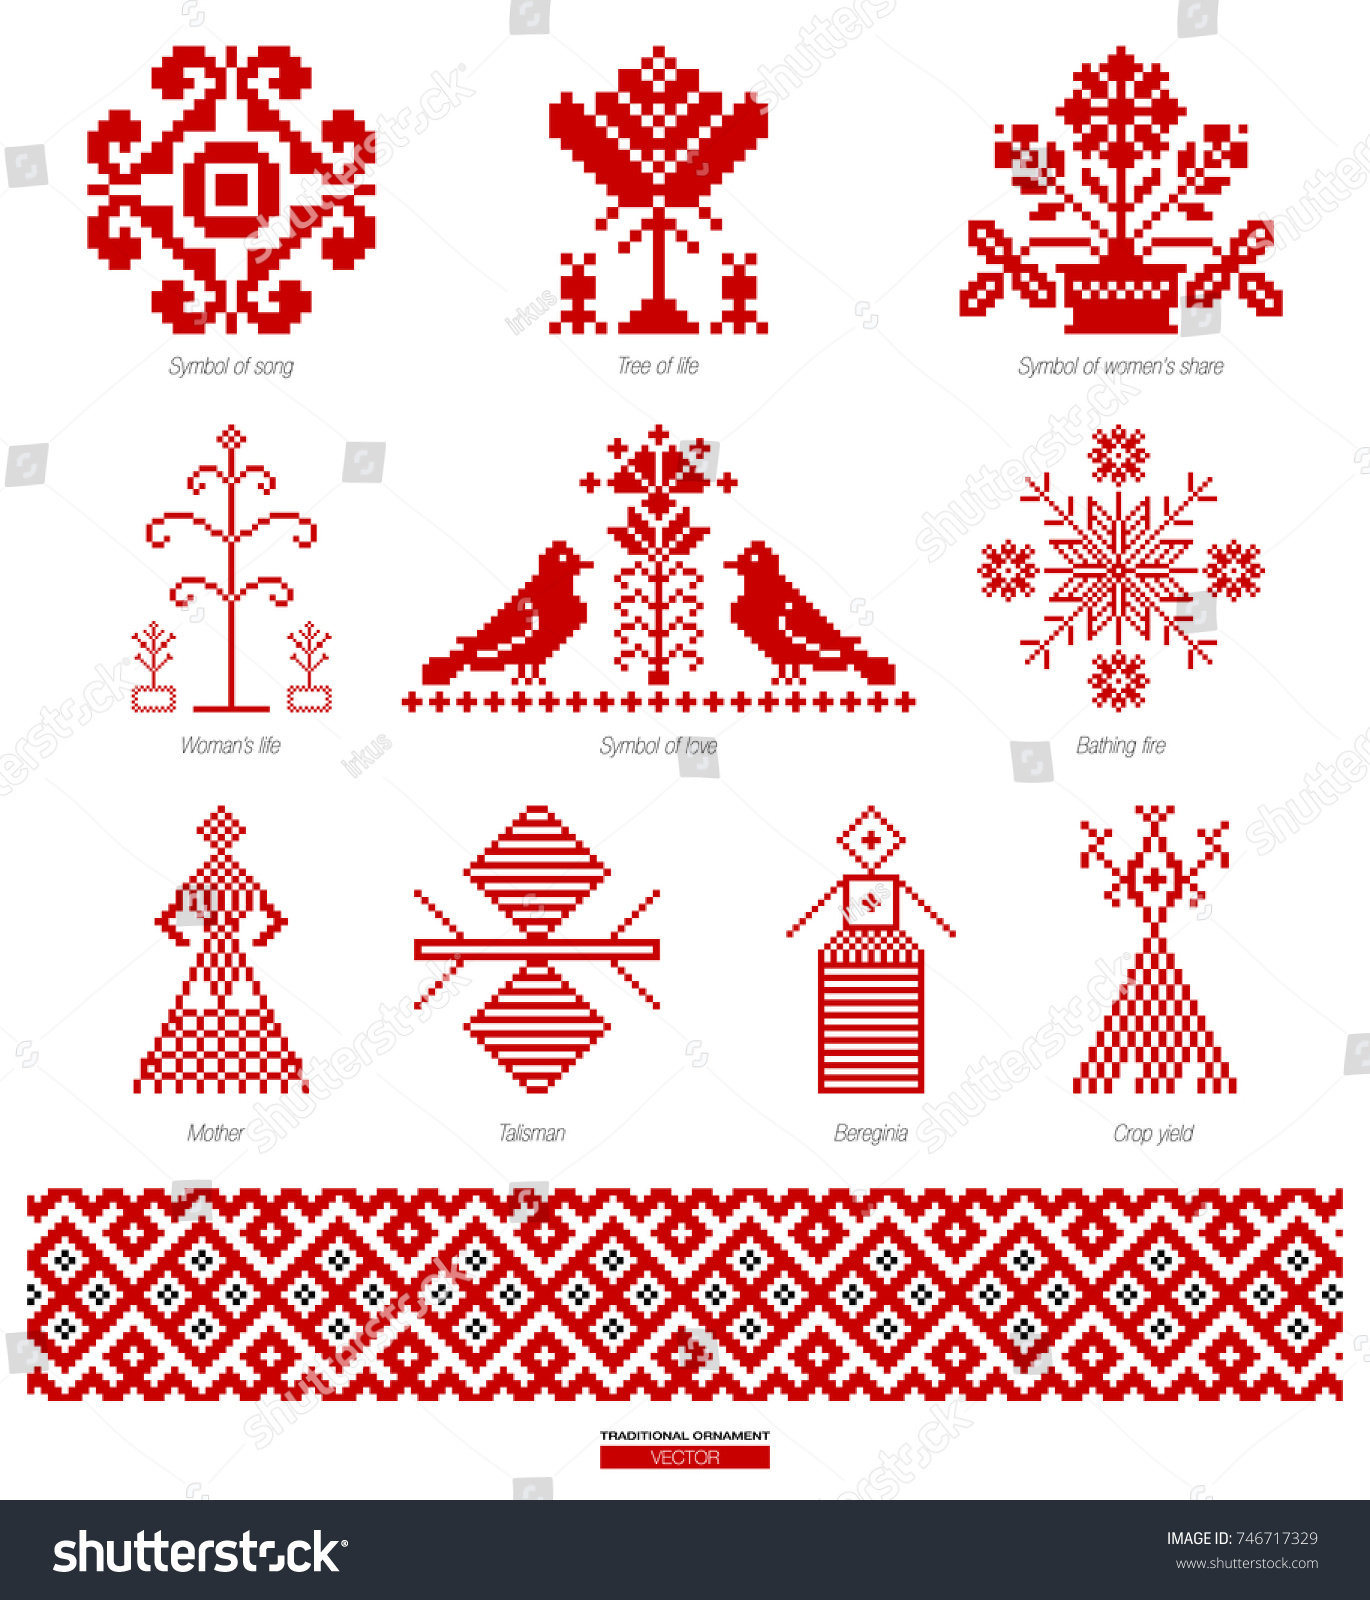 Symbol of song gallery symbol and sign ideas symbol of song images symbol and sign ideas slavic red belarusian national symbol ornament stock vector buycottarizona